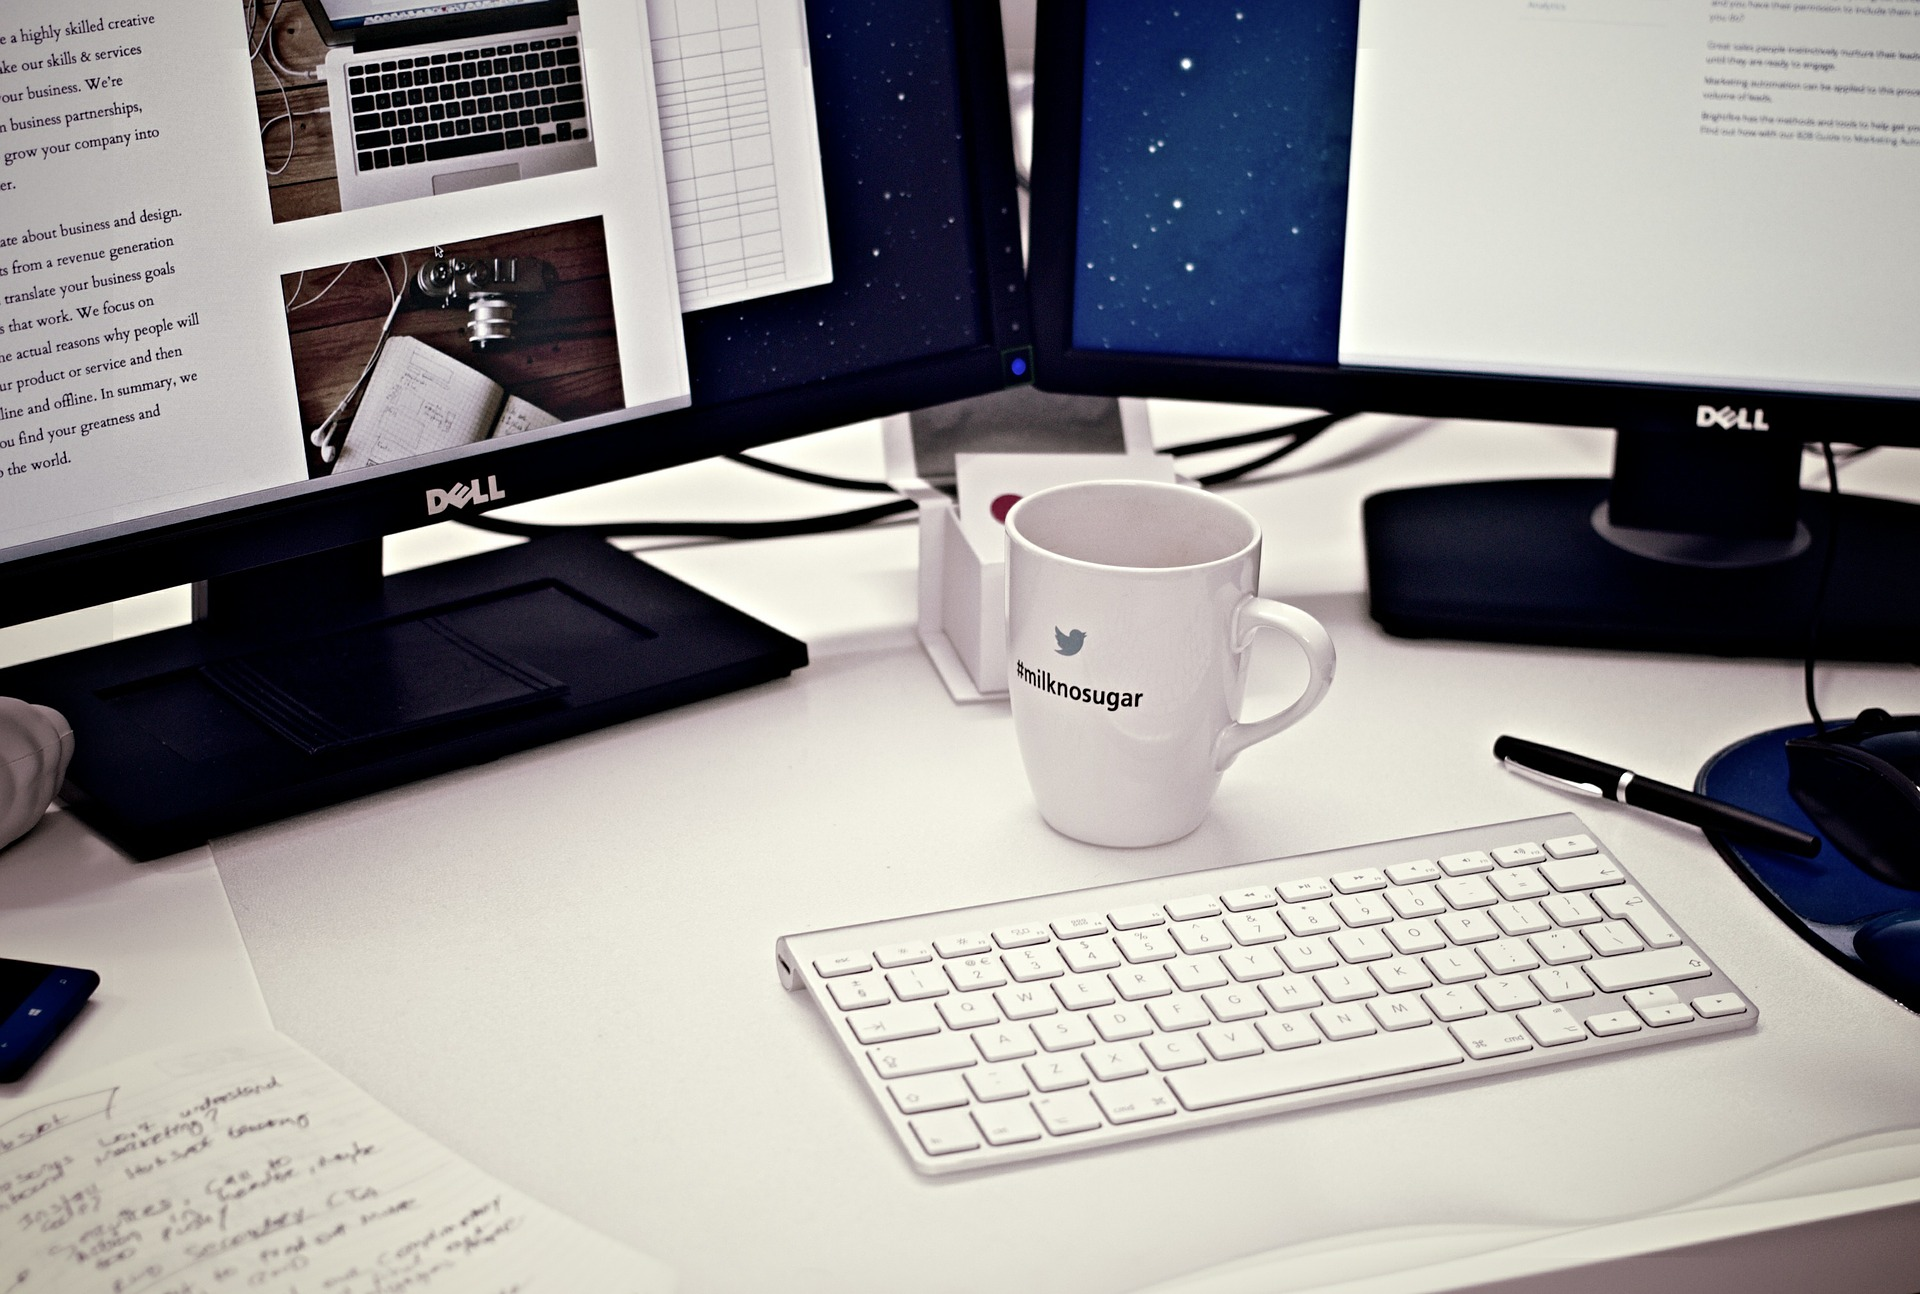 Typical office desk set-up, showing monitors, keyboard and mouse